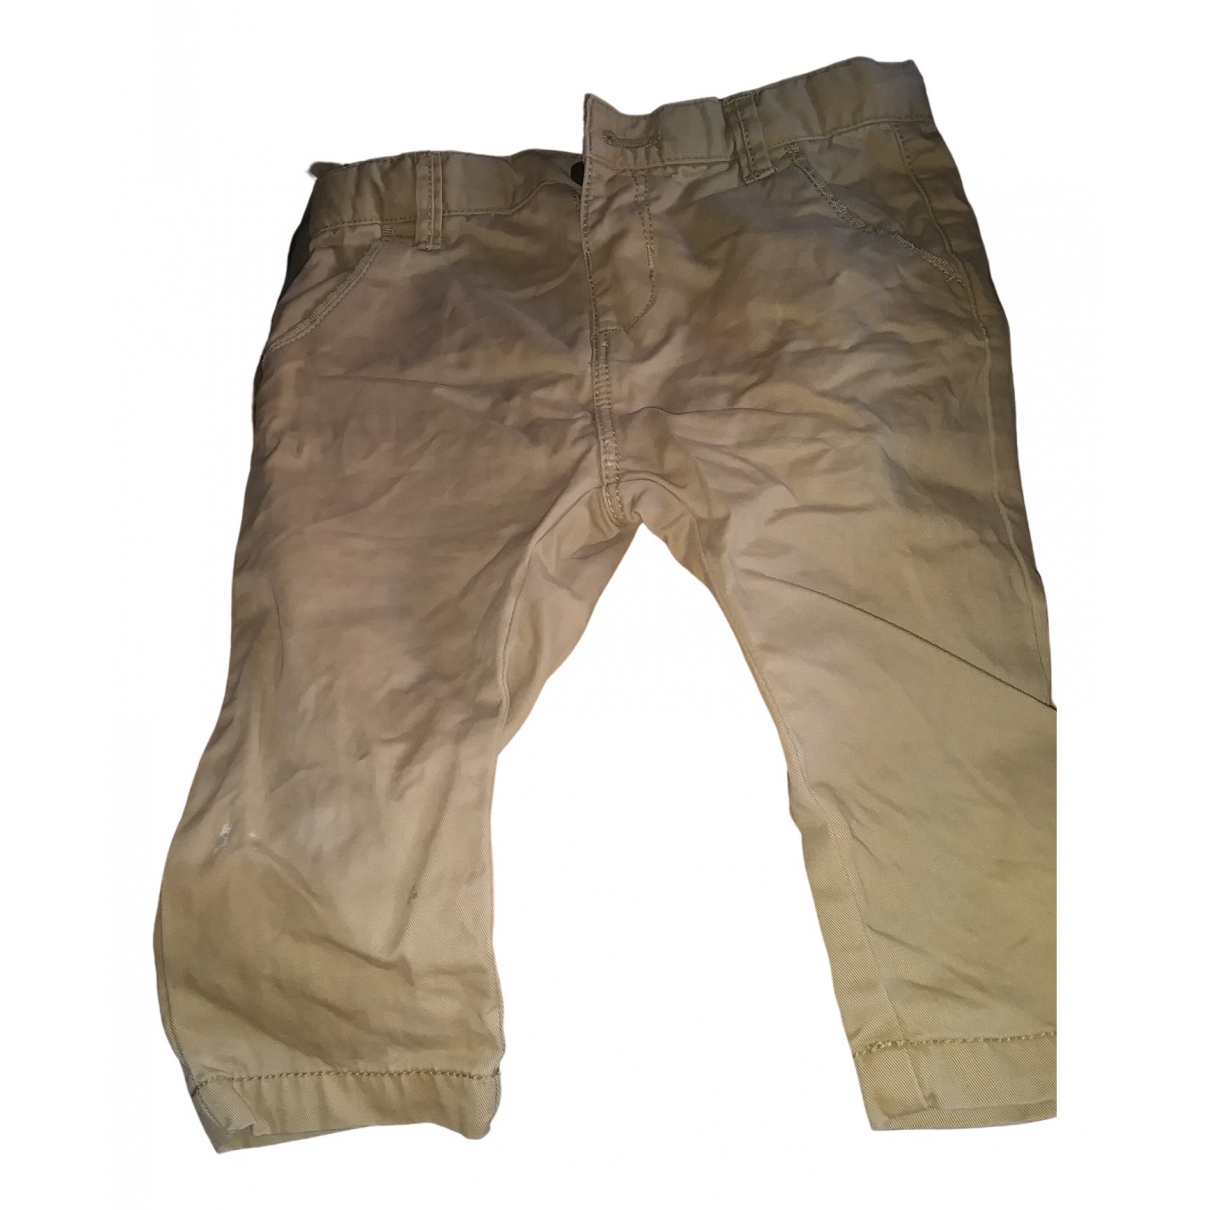 Zara \N Beige Trousers for Kids 3 months - up to 60cm FR